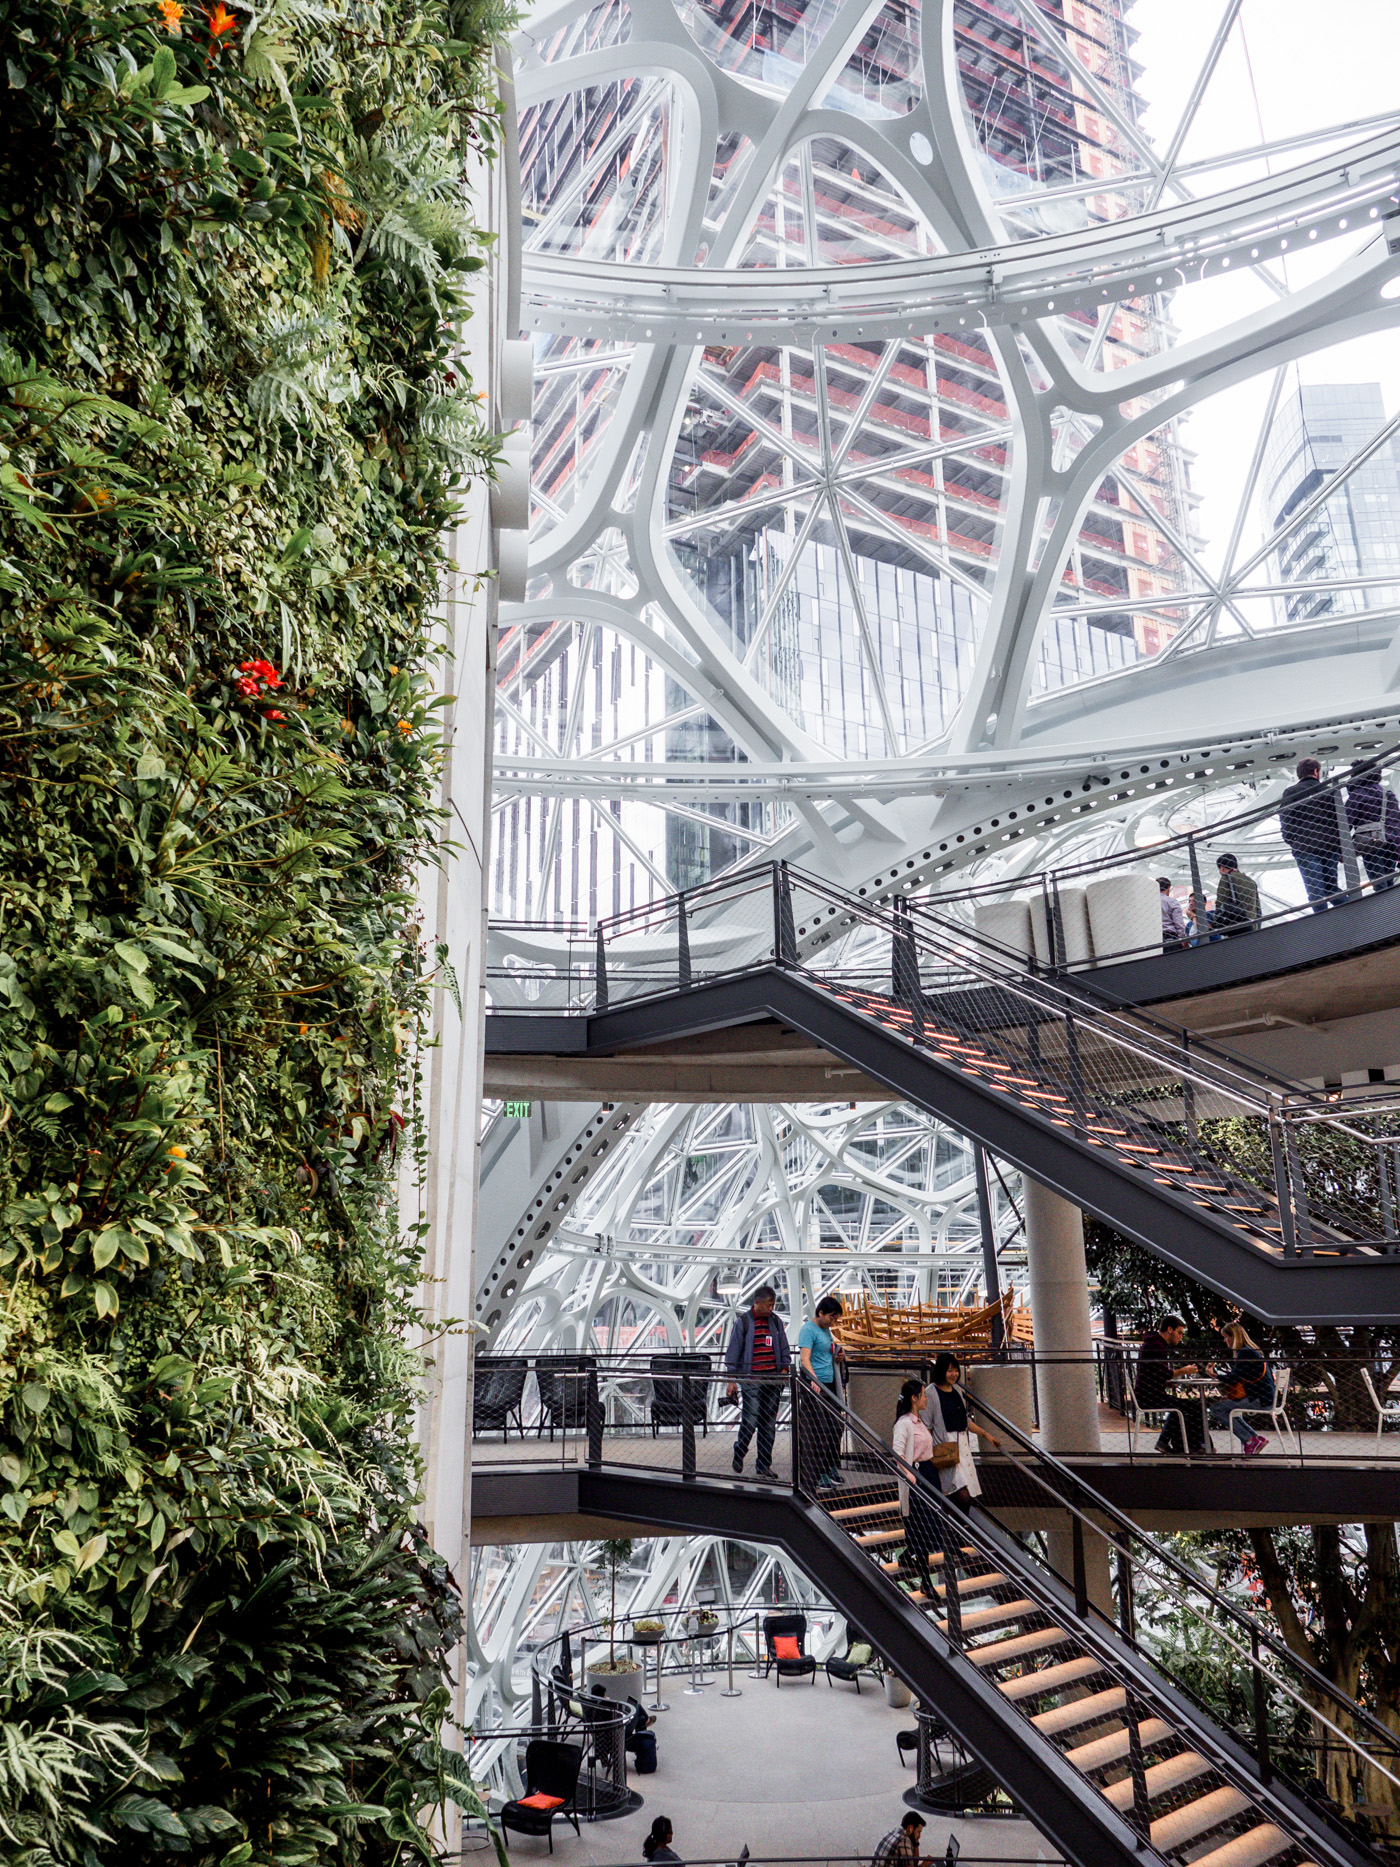 Inside look at the Amazon spheres in Seattle